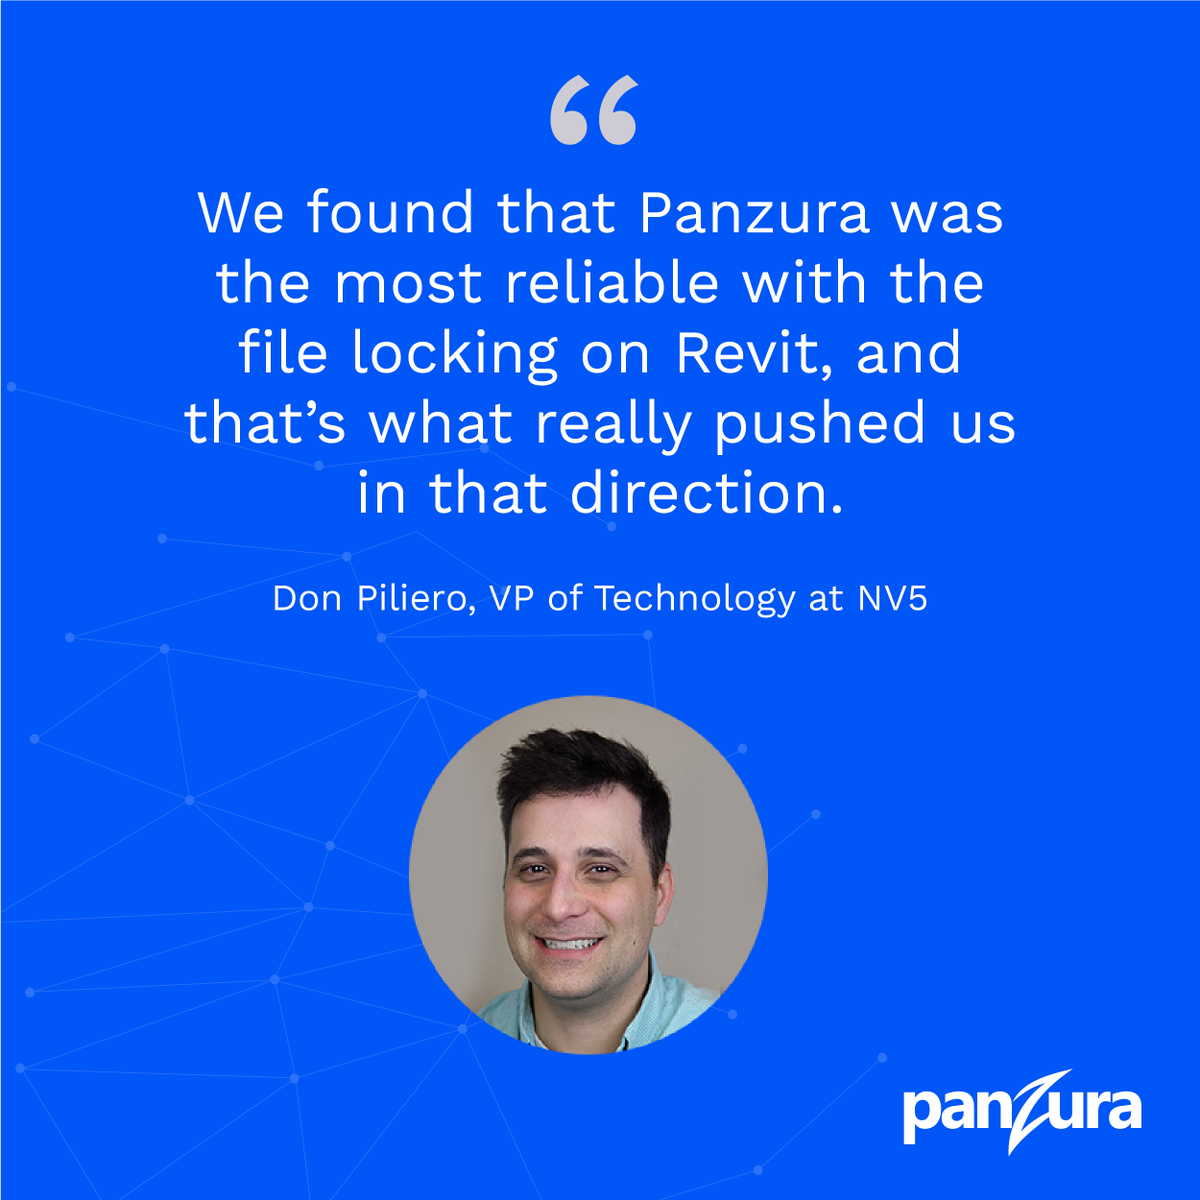 When you're using Revit across multiple locations, file locking and byte-range locking has to work or your users are going to overwrite each other💥.   Learn how Panzura helps firms to work like everyone's in 1 office, even when they're at home.  👉 https://t.co/O9sbyahgfg https://t.co/1KpK0JiyPu